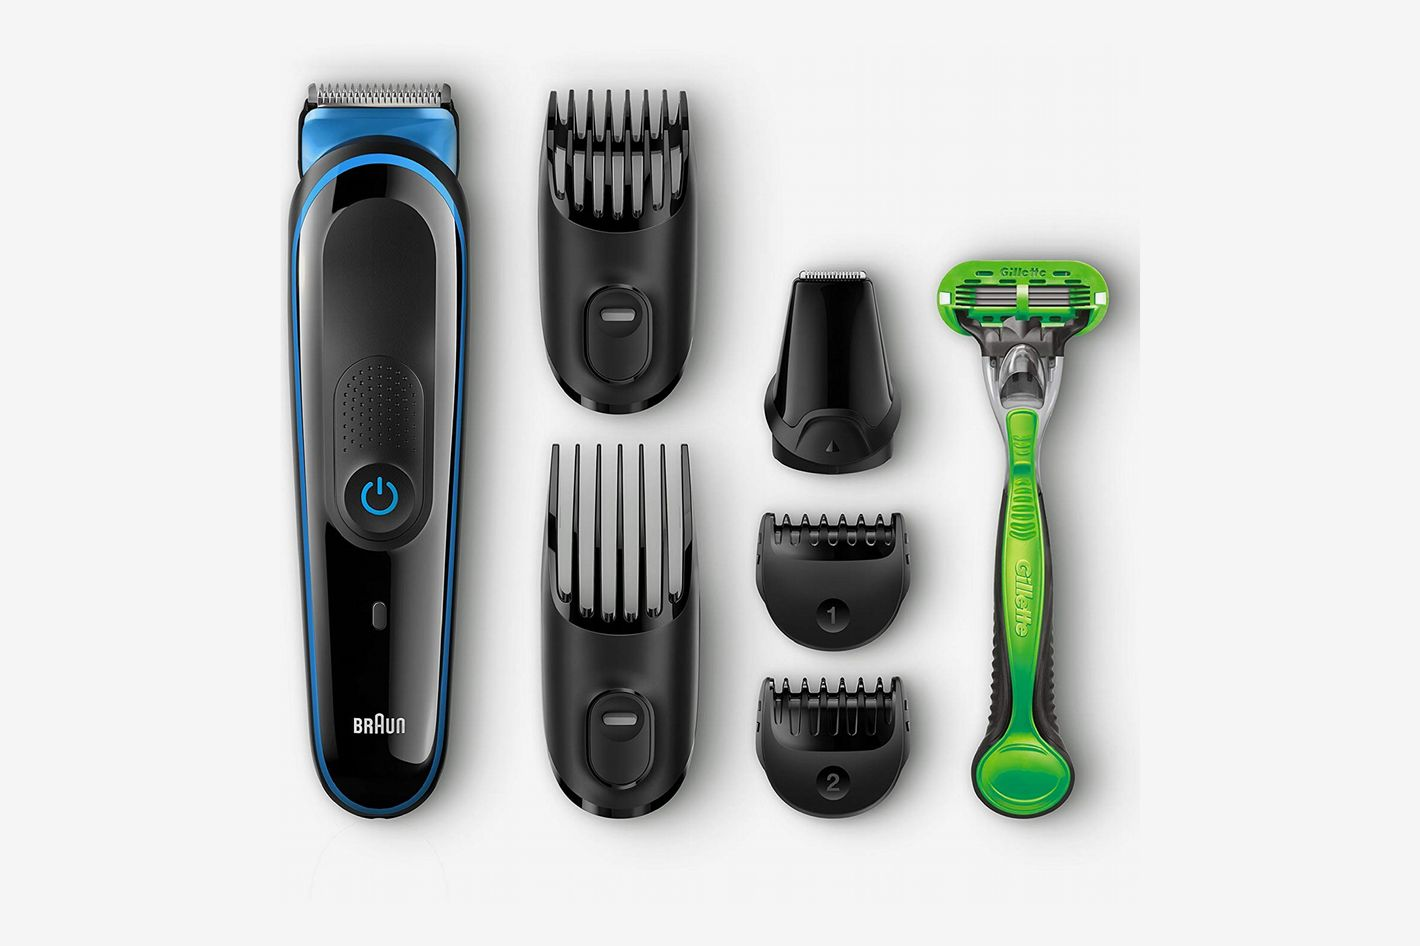 Braun MGK3040 Men's Beard Trimmer for Hair Trimming with 4 Combs & Gillette Body Razor